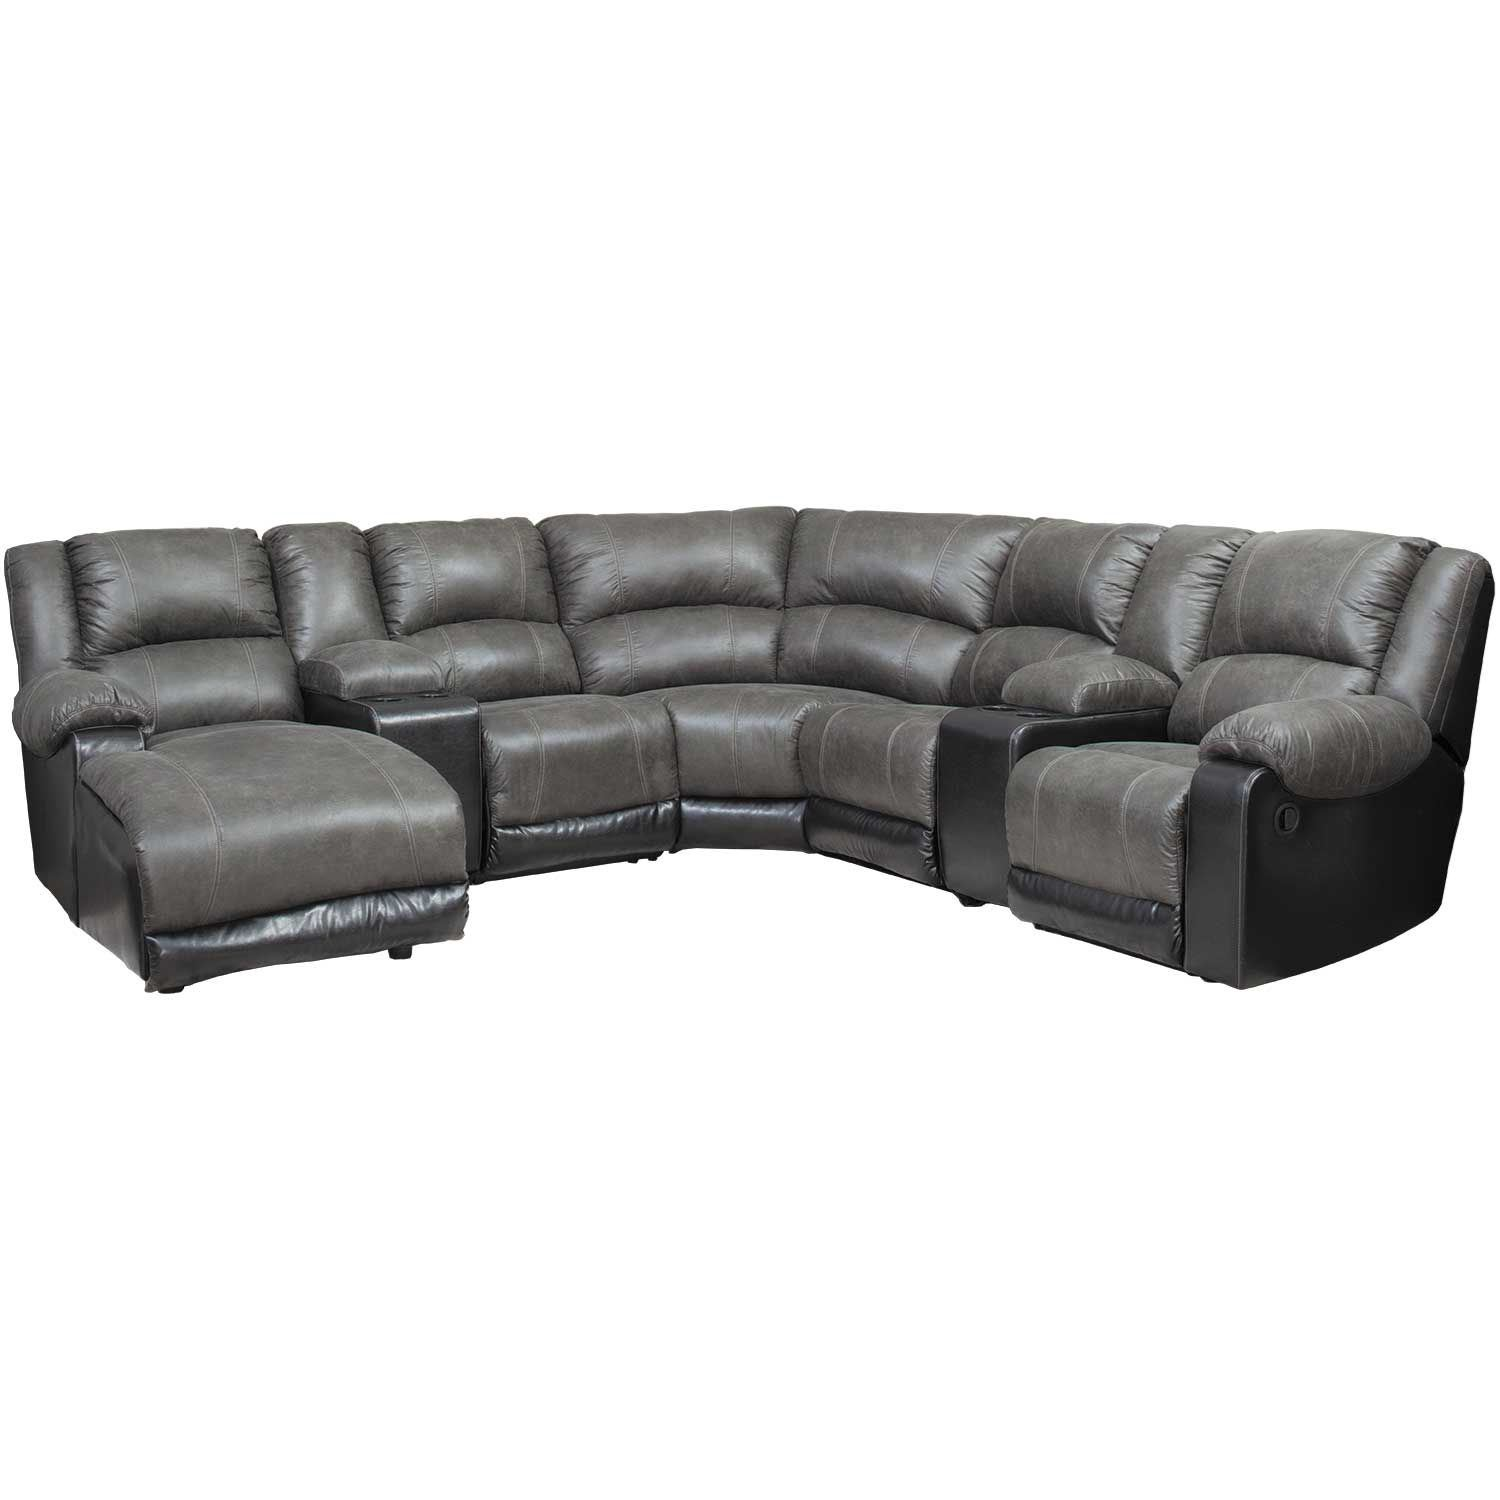 Picture of Nantahala Slate 7 Piece Reclining Sectional with LAF Chaise